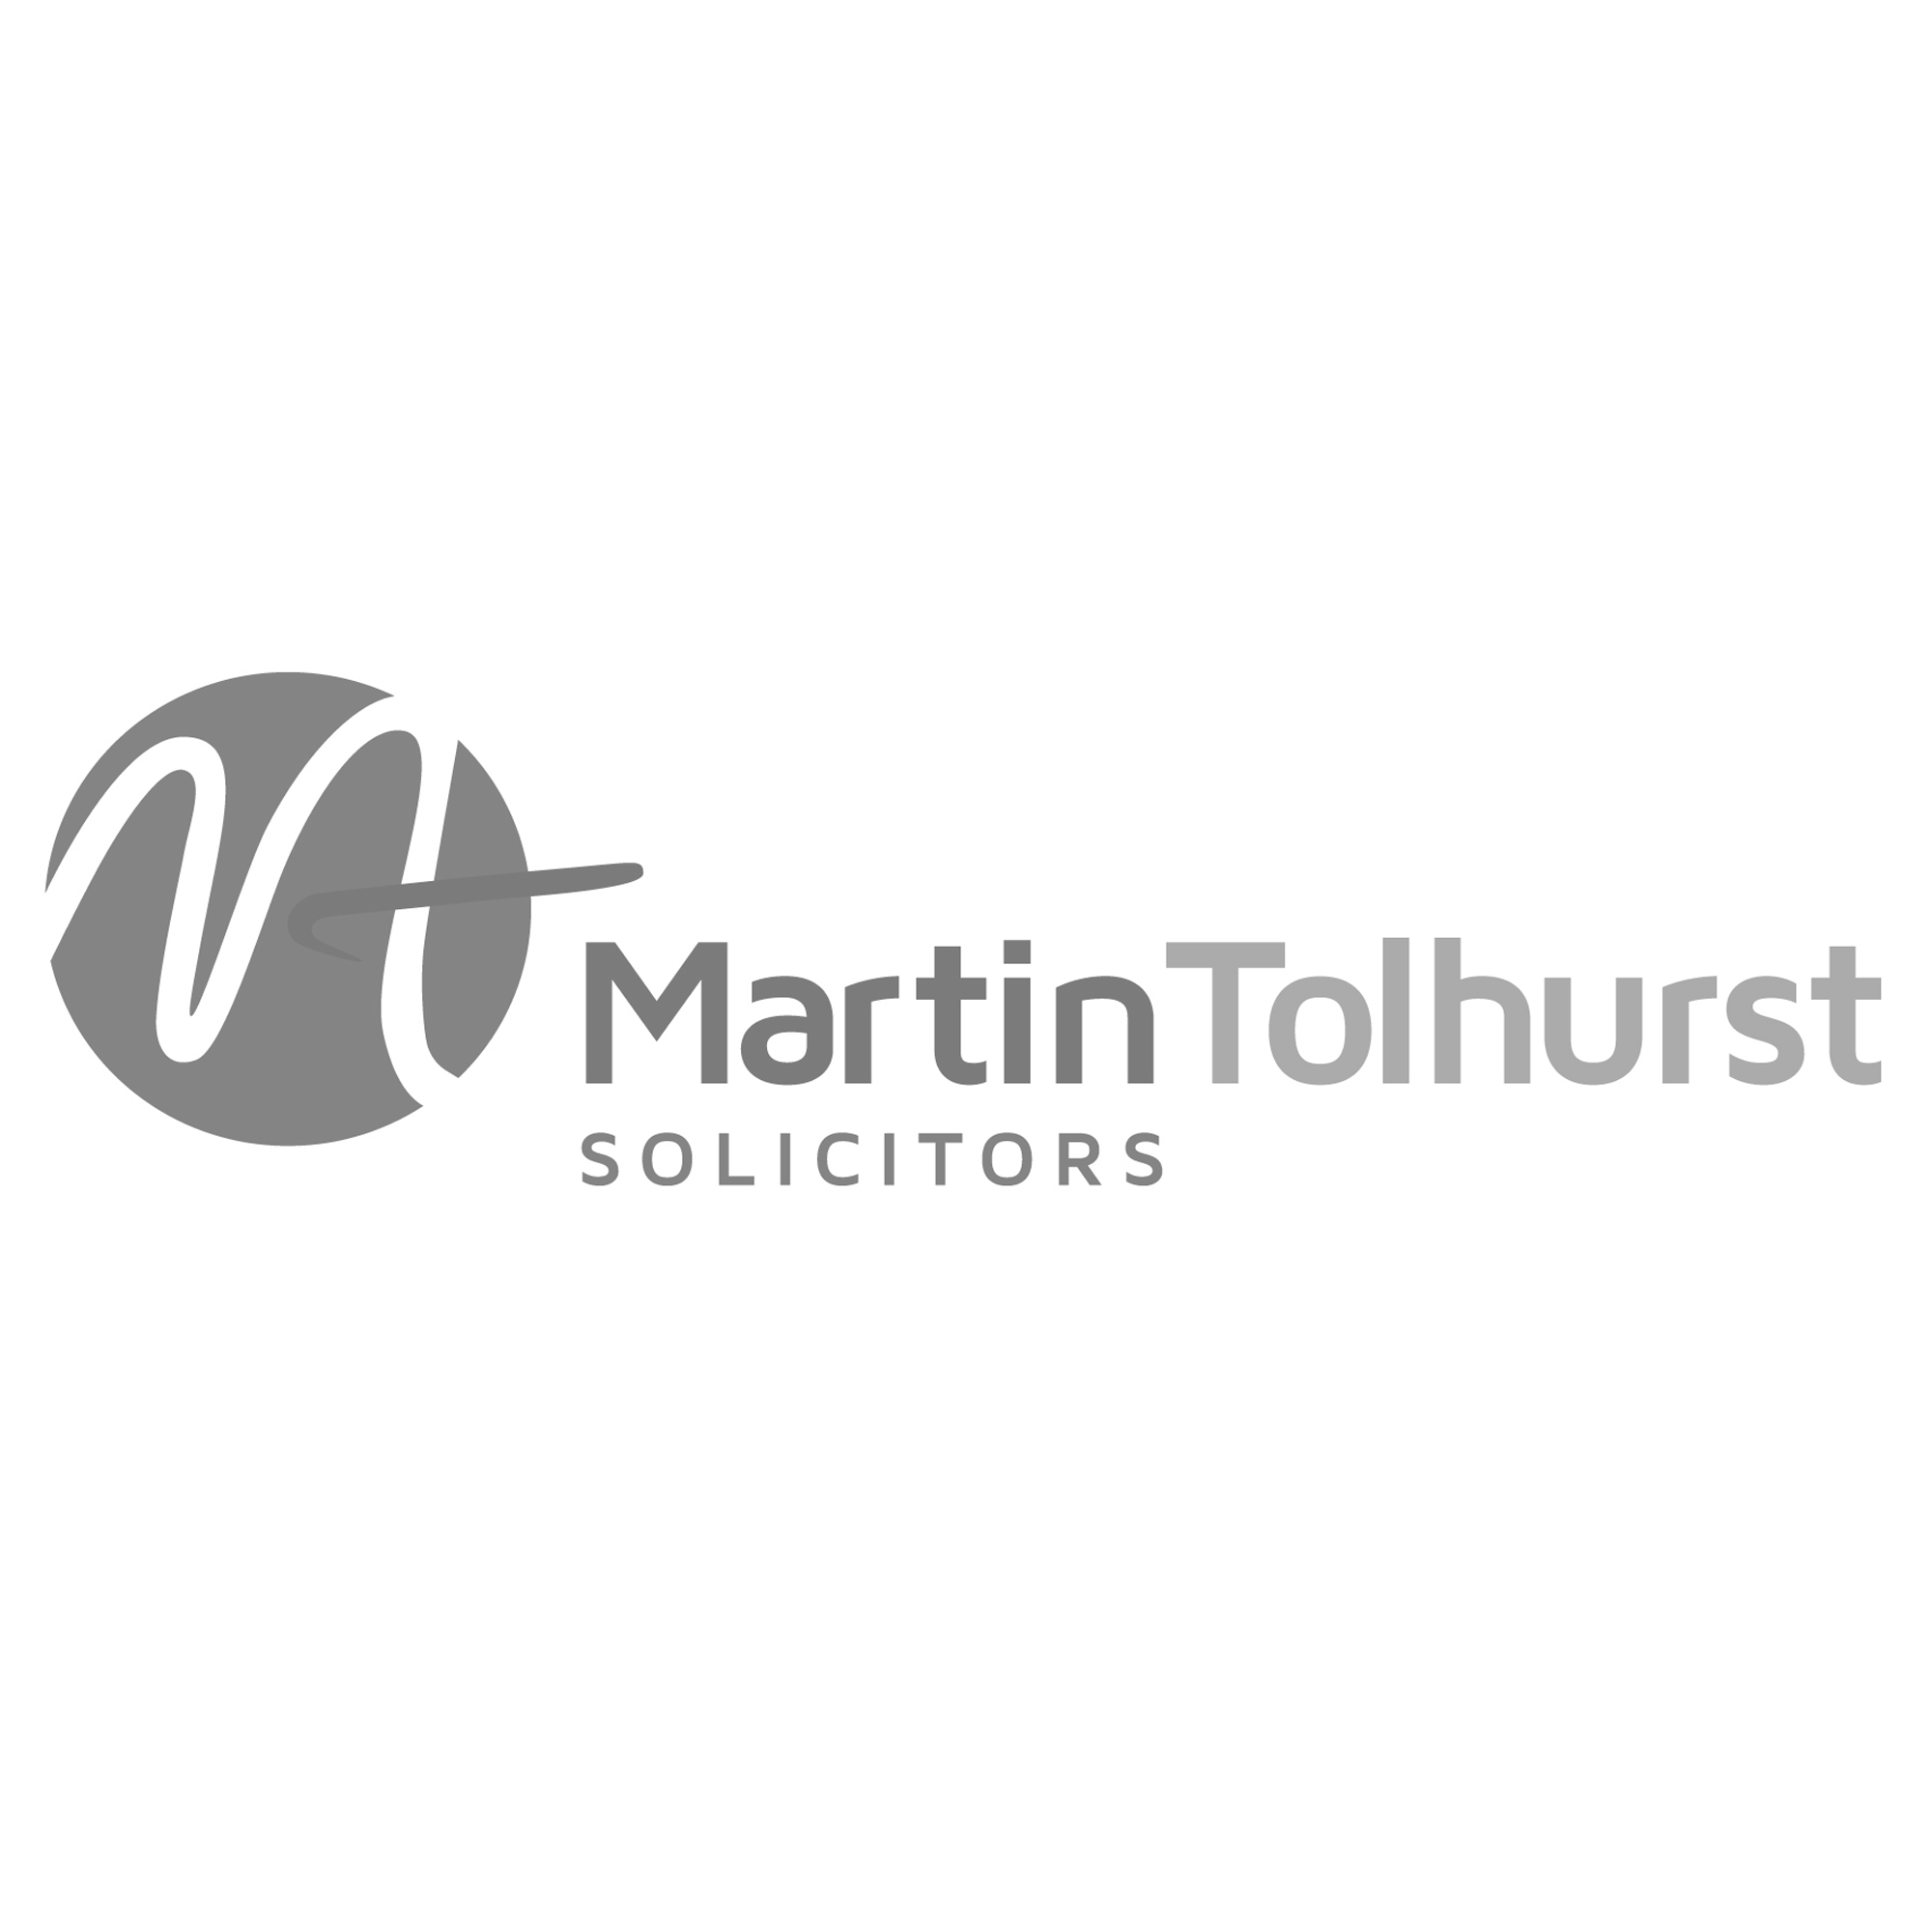 martin tolhurst logo black and white.png